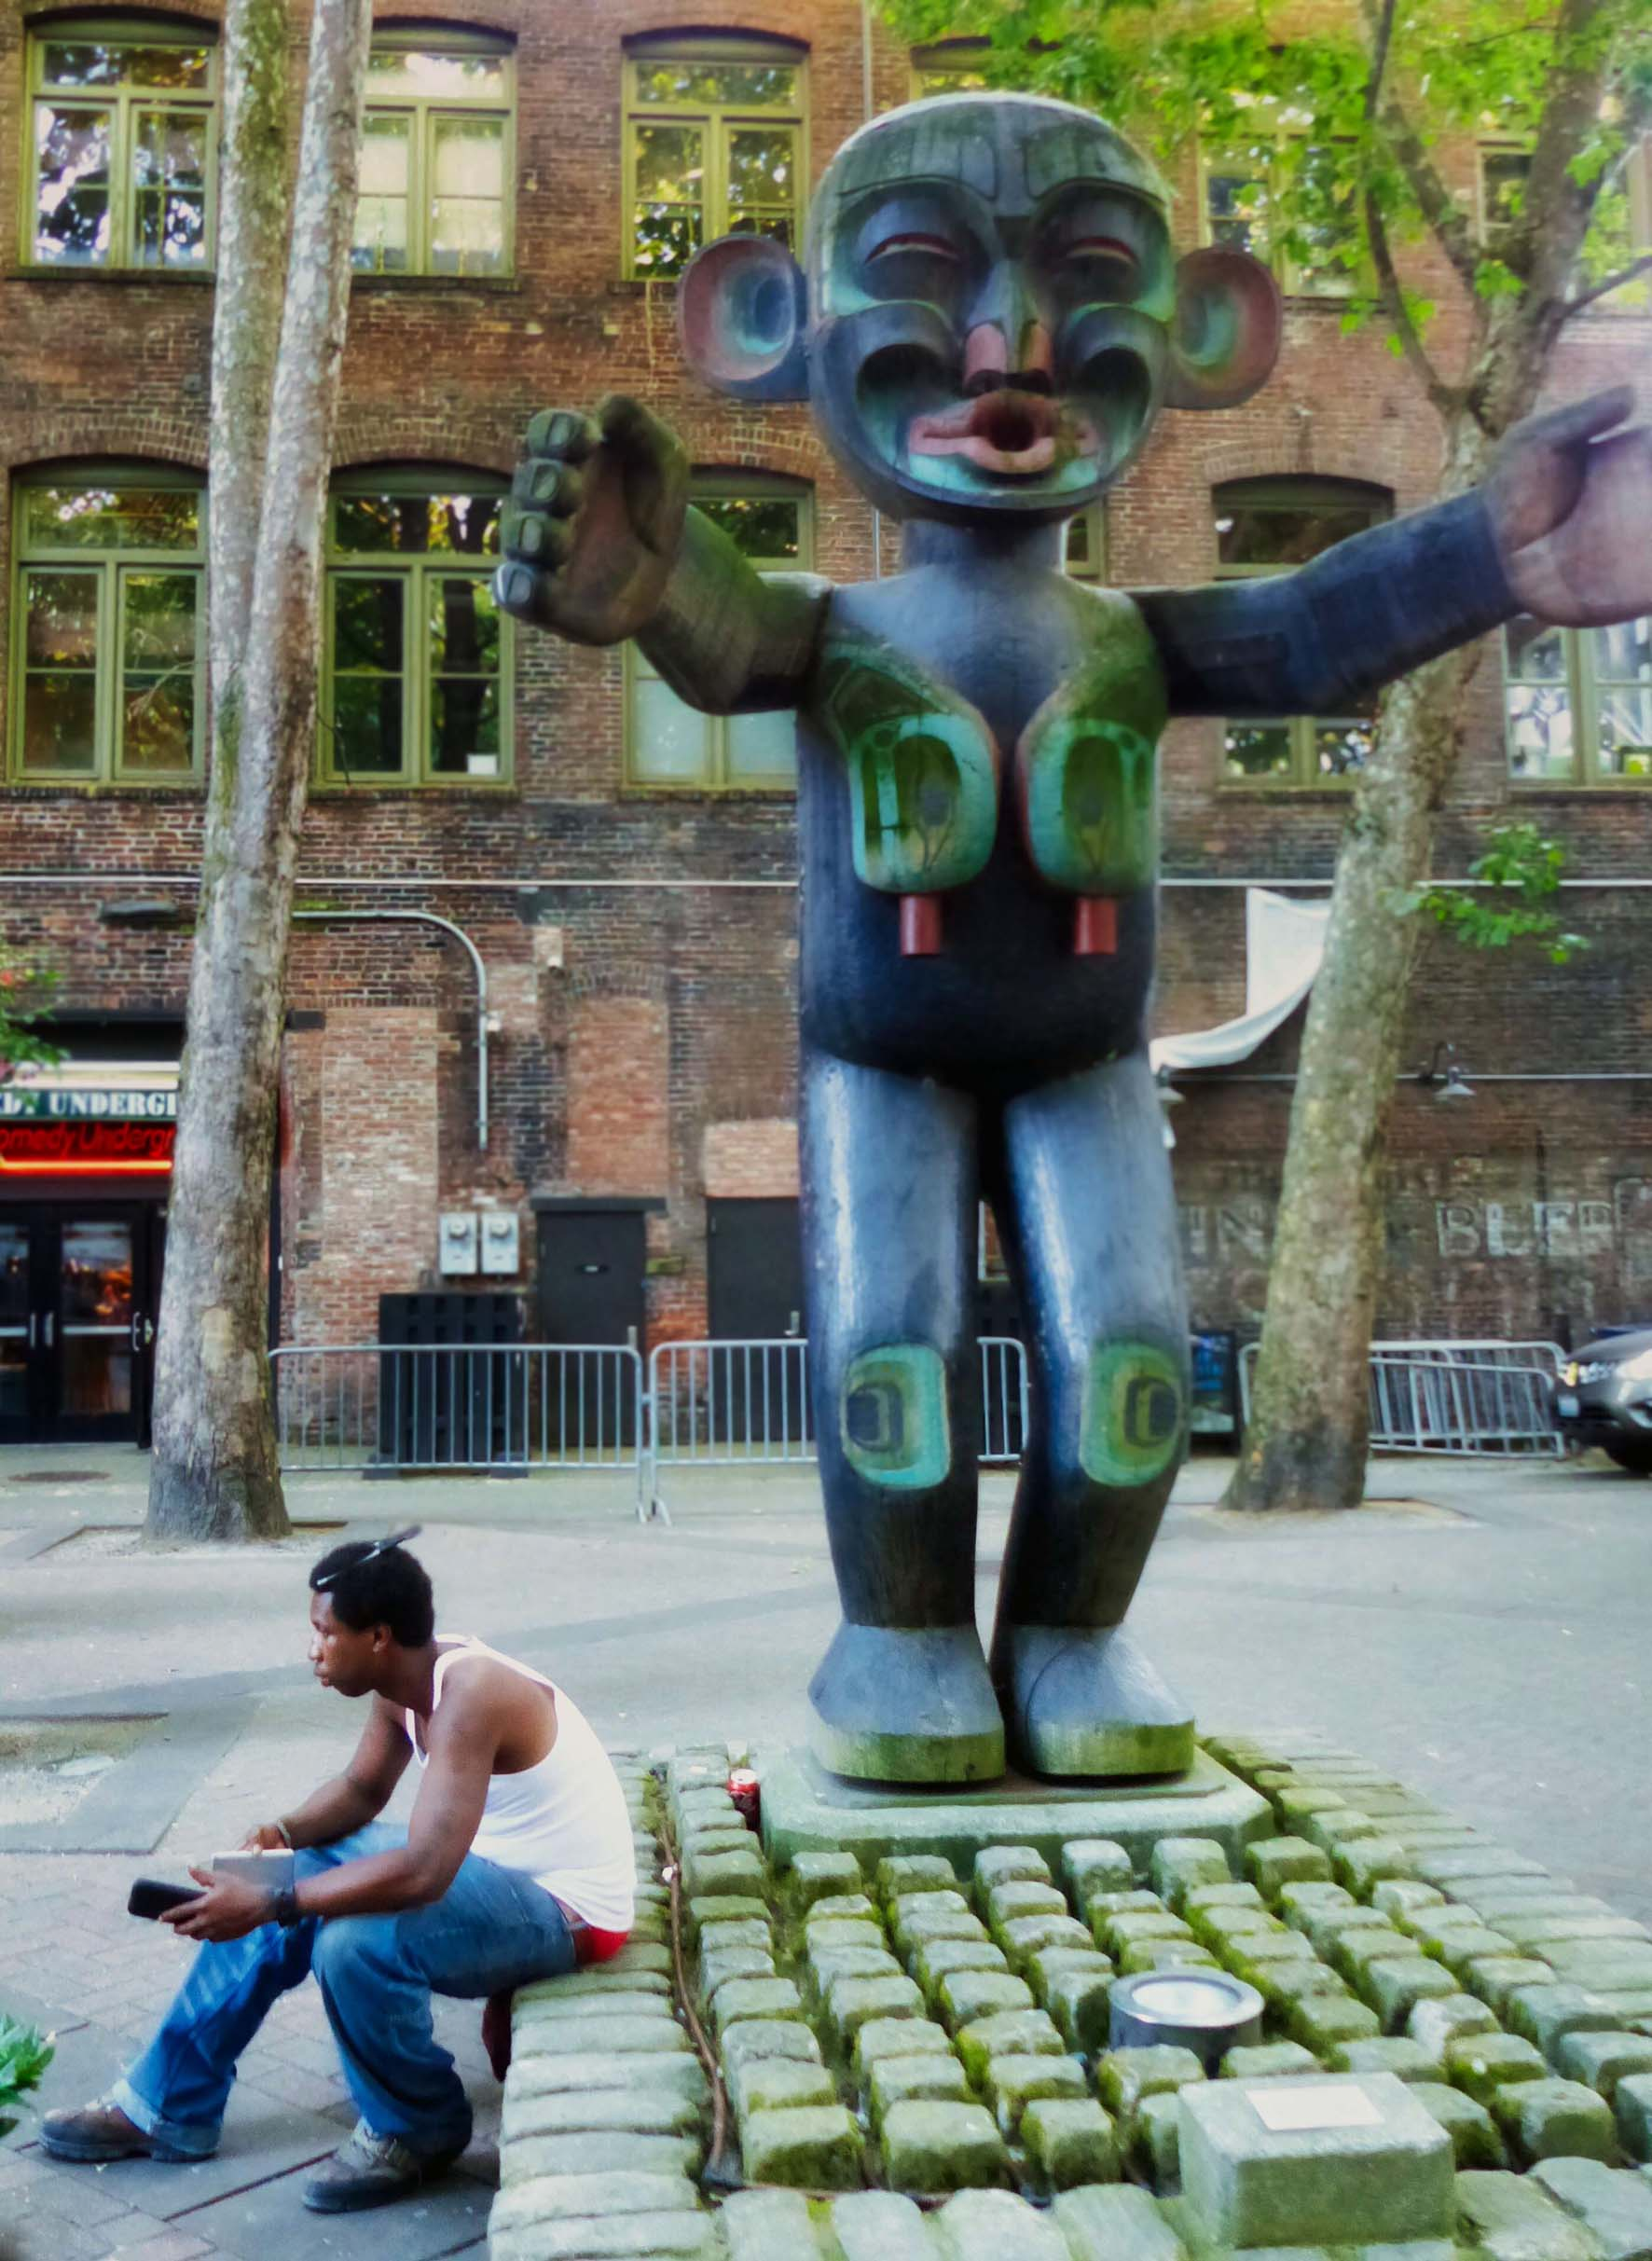 Man sitting at foot of large wooden statue